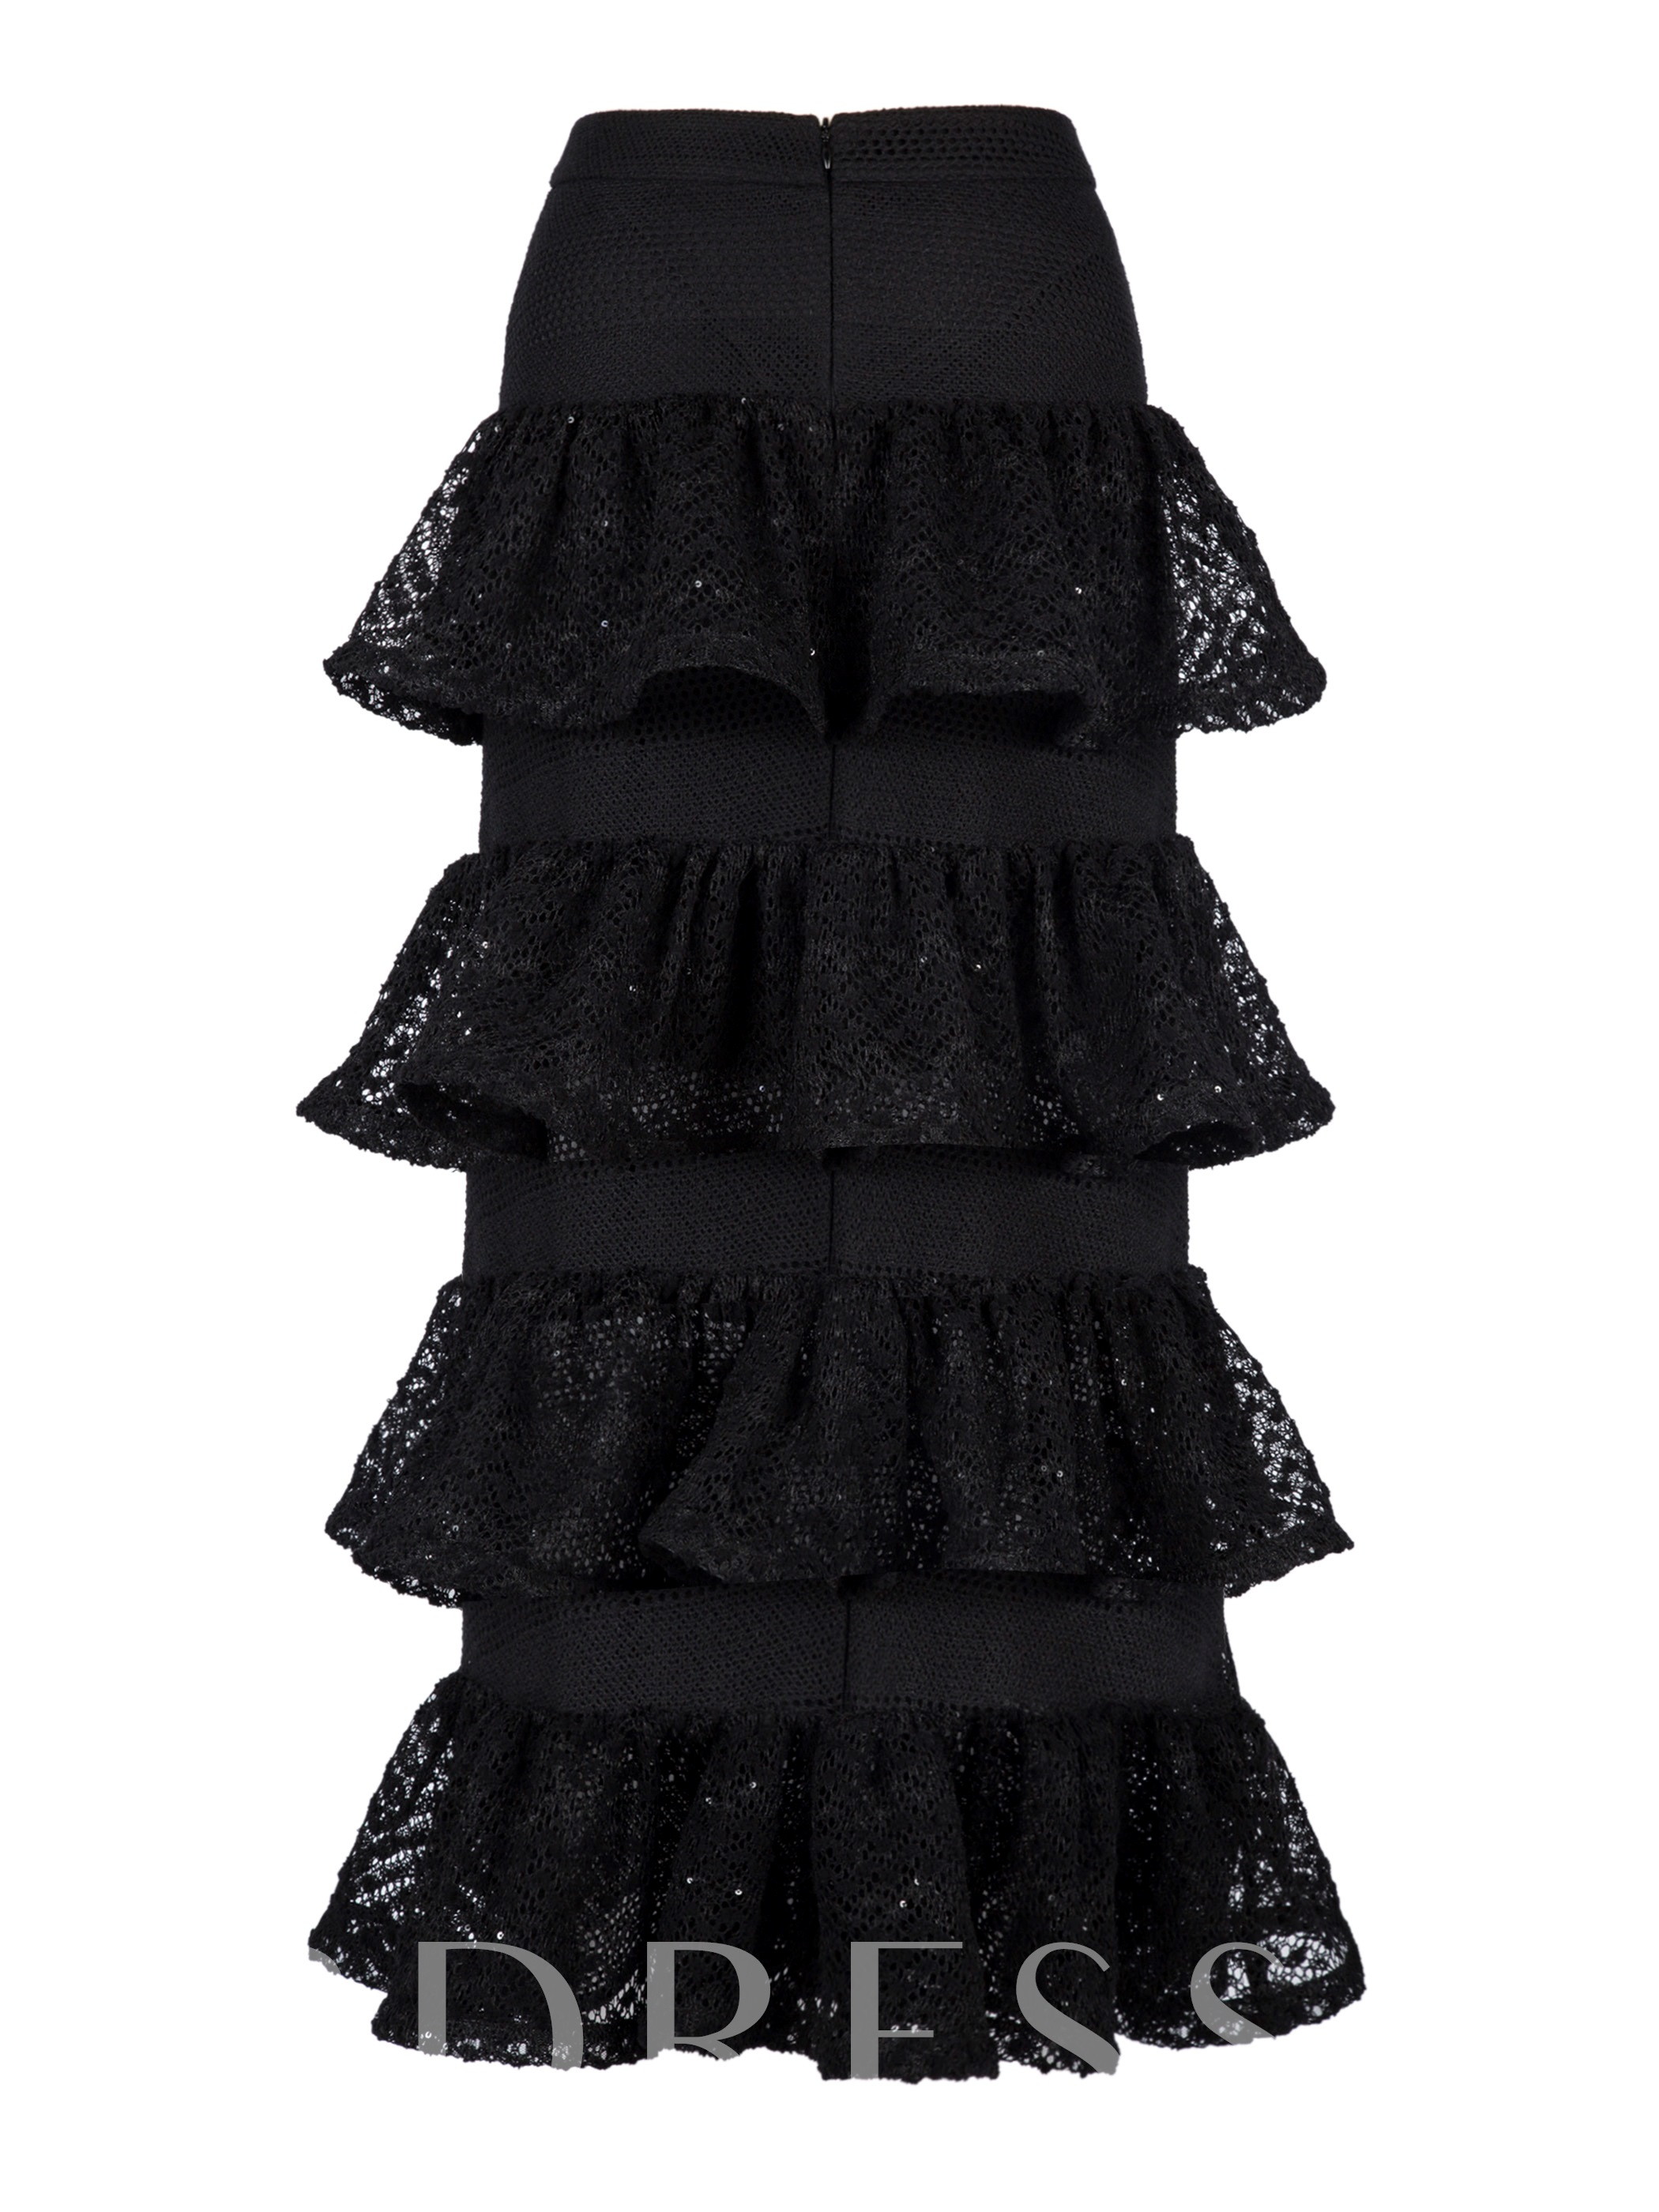 Image of A-Line Mid-Calf Layered Womens Skirt